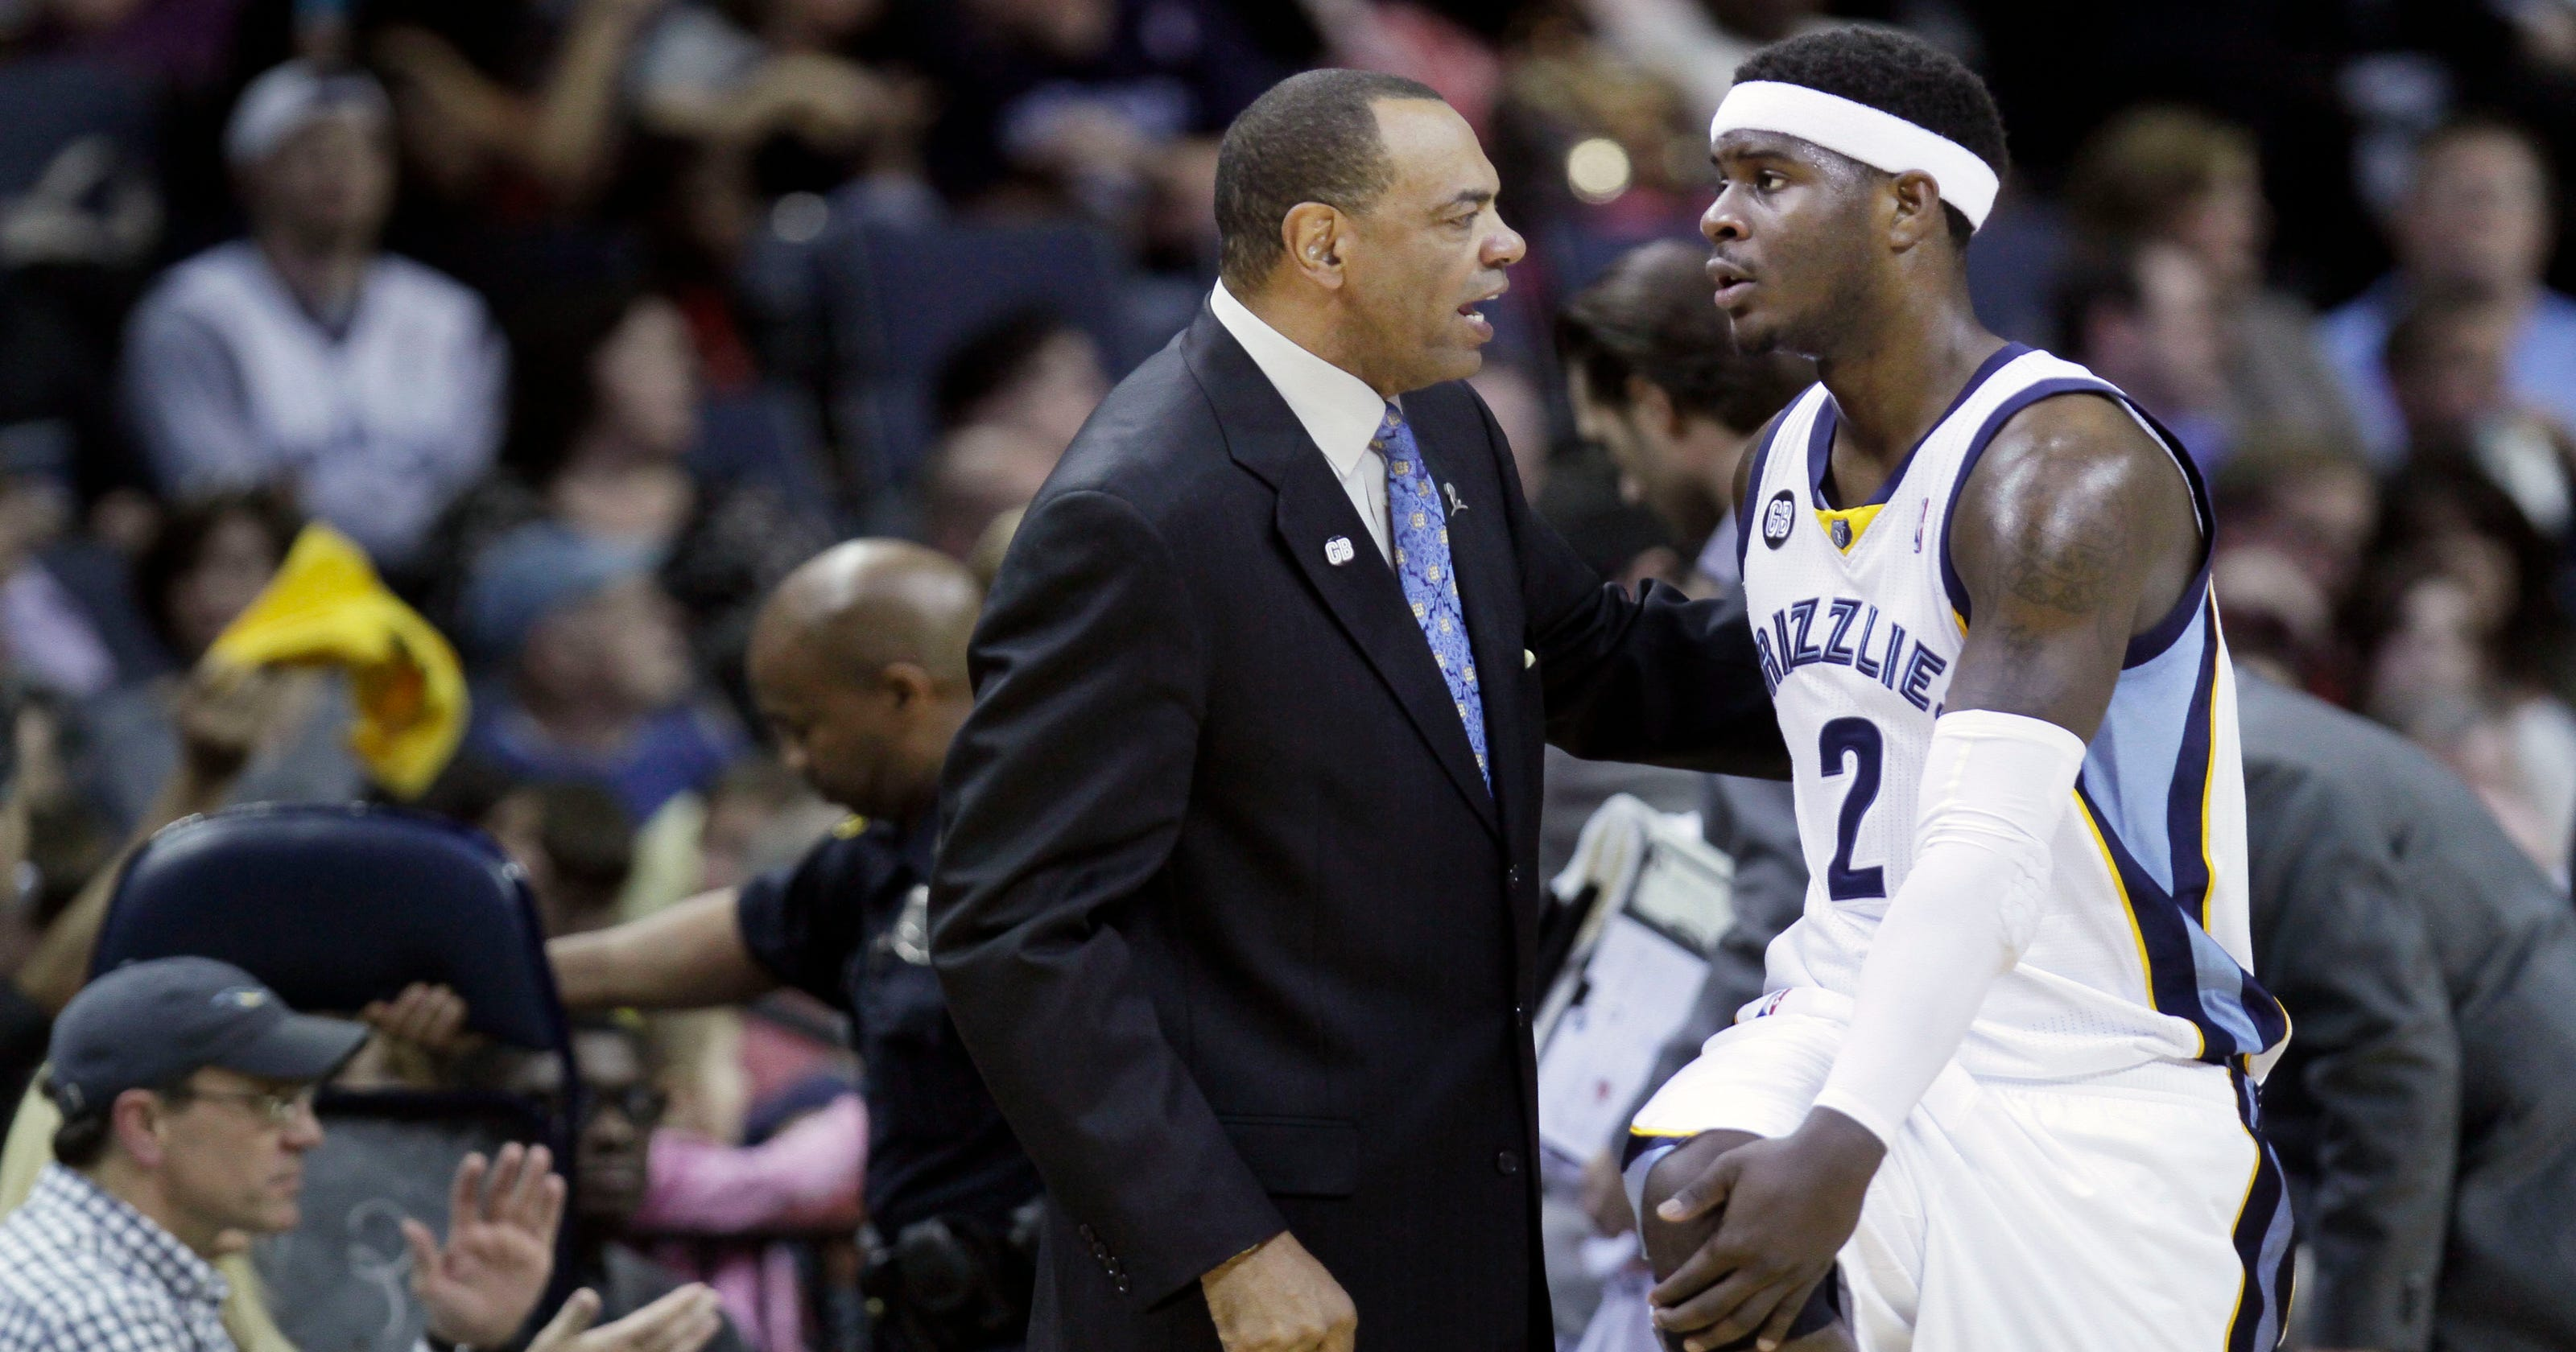 Josh Selby says Grizzlies experience led to depression